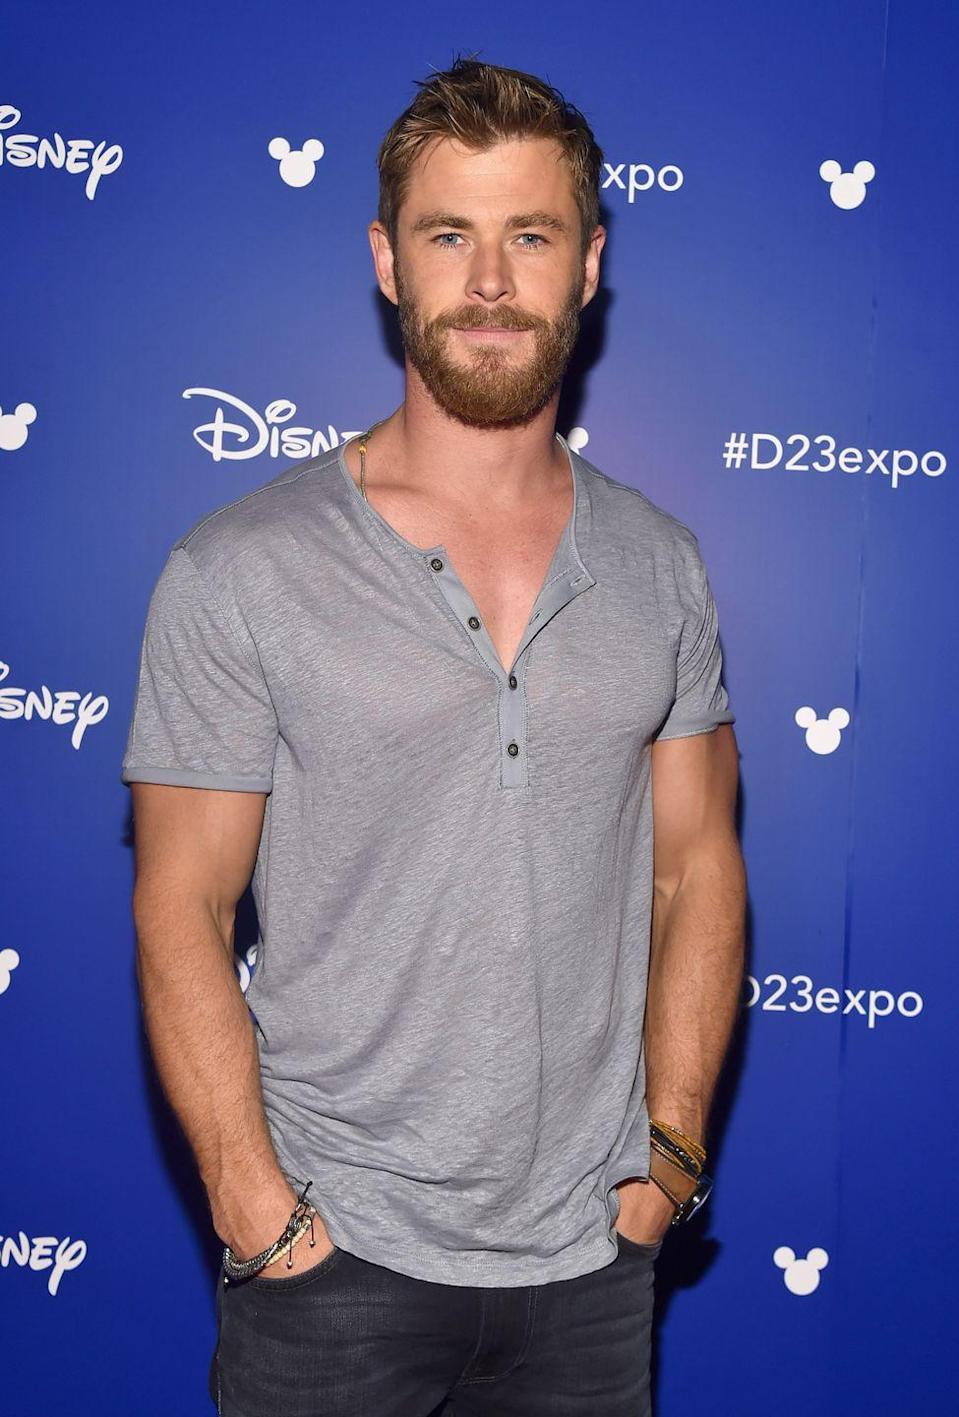 <p>Chris Hemsworth is a modest guy, so he doesn't need to flex to show off his muscles. Instead, the Australian star keeps it real in a relaxed t-shirt at Disney's D23 Expo in 2018. </p>